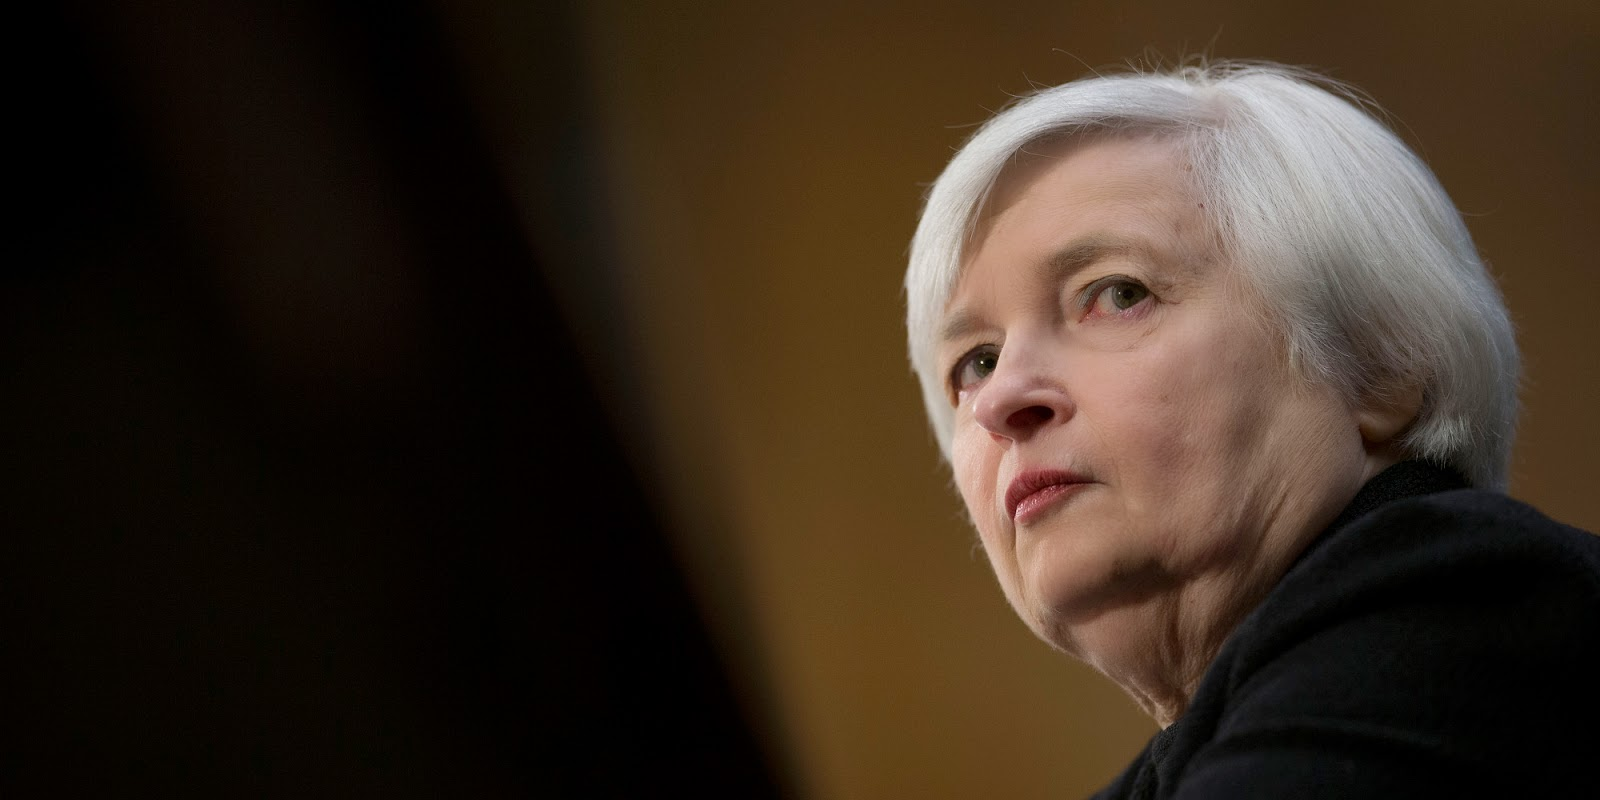 cliff k uuml le s notes  essay demonstrates how federal reserve chair janet yellen plays a caring sweet grandmotherly type figure concerned about the poor middle class